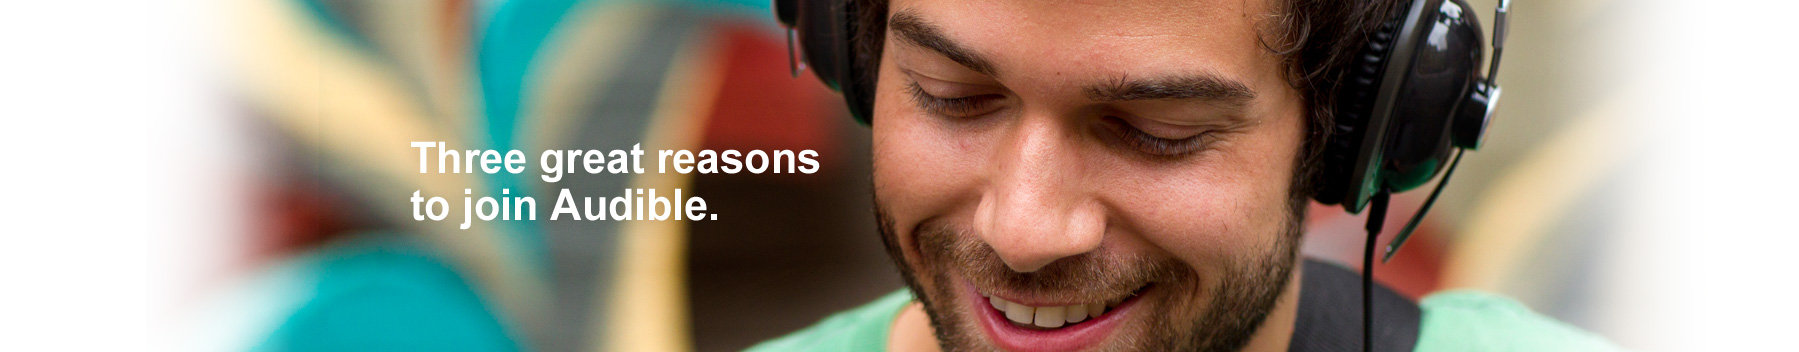 3 great reasons to join Audible.